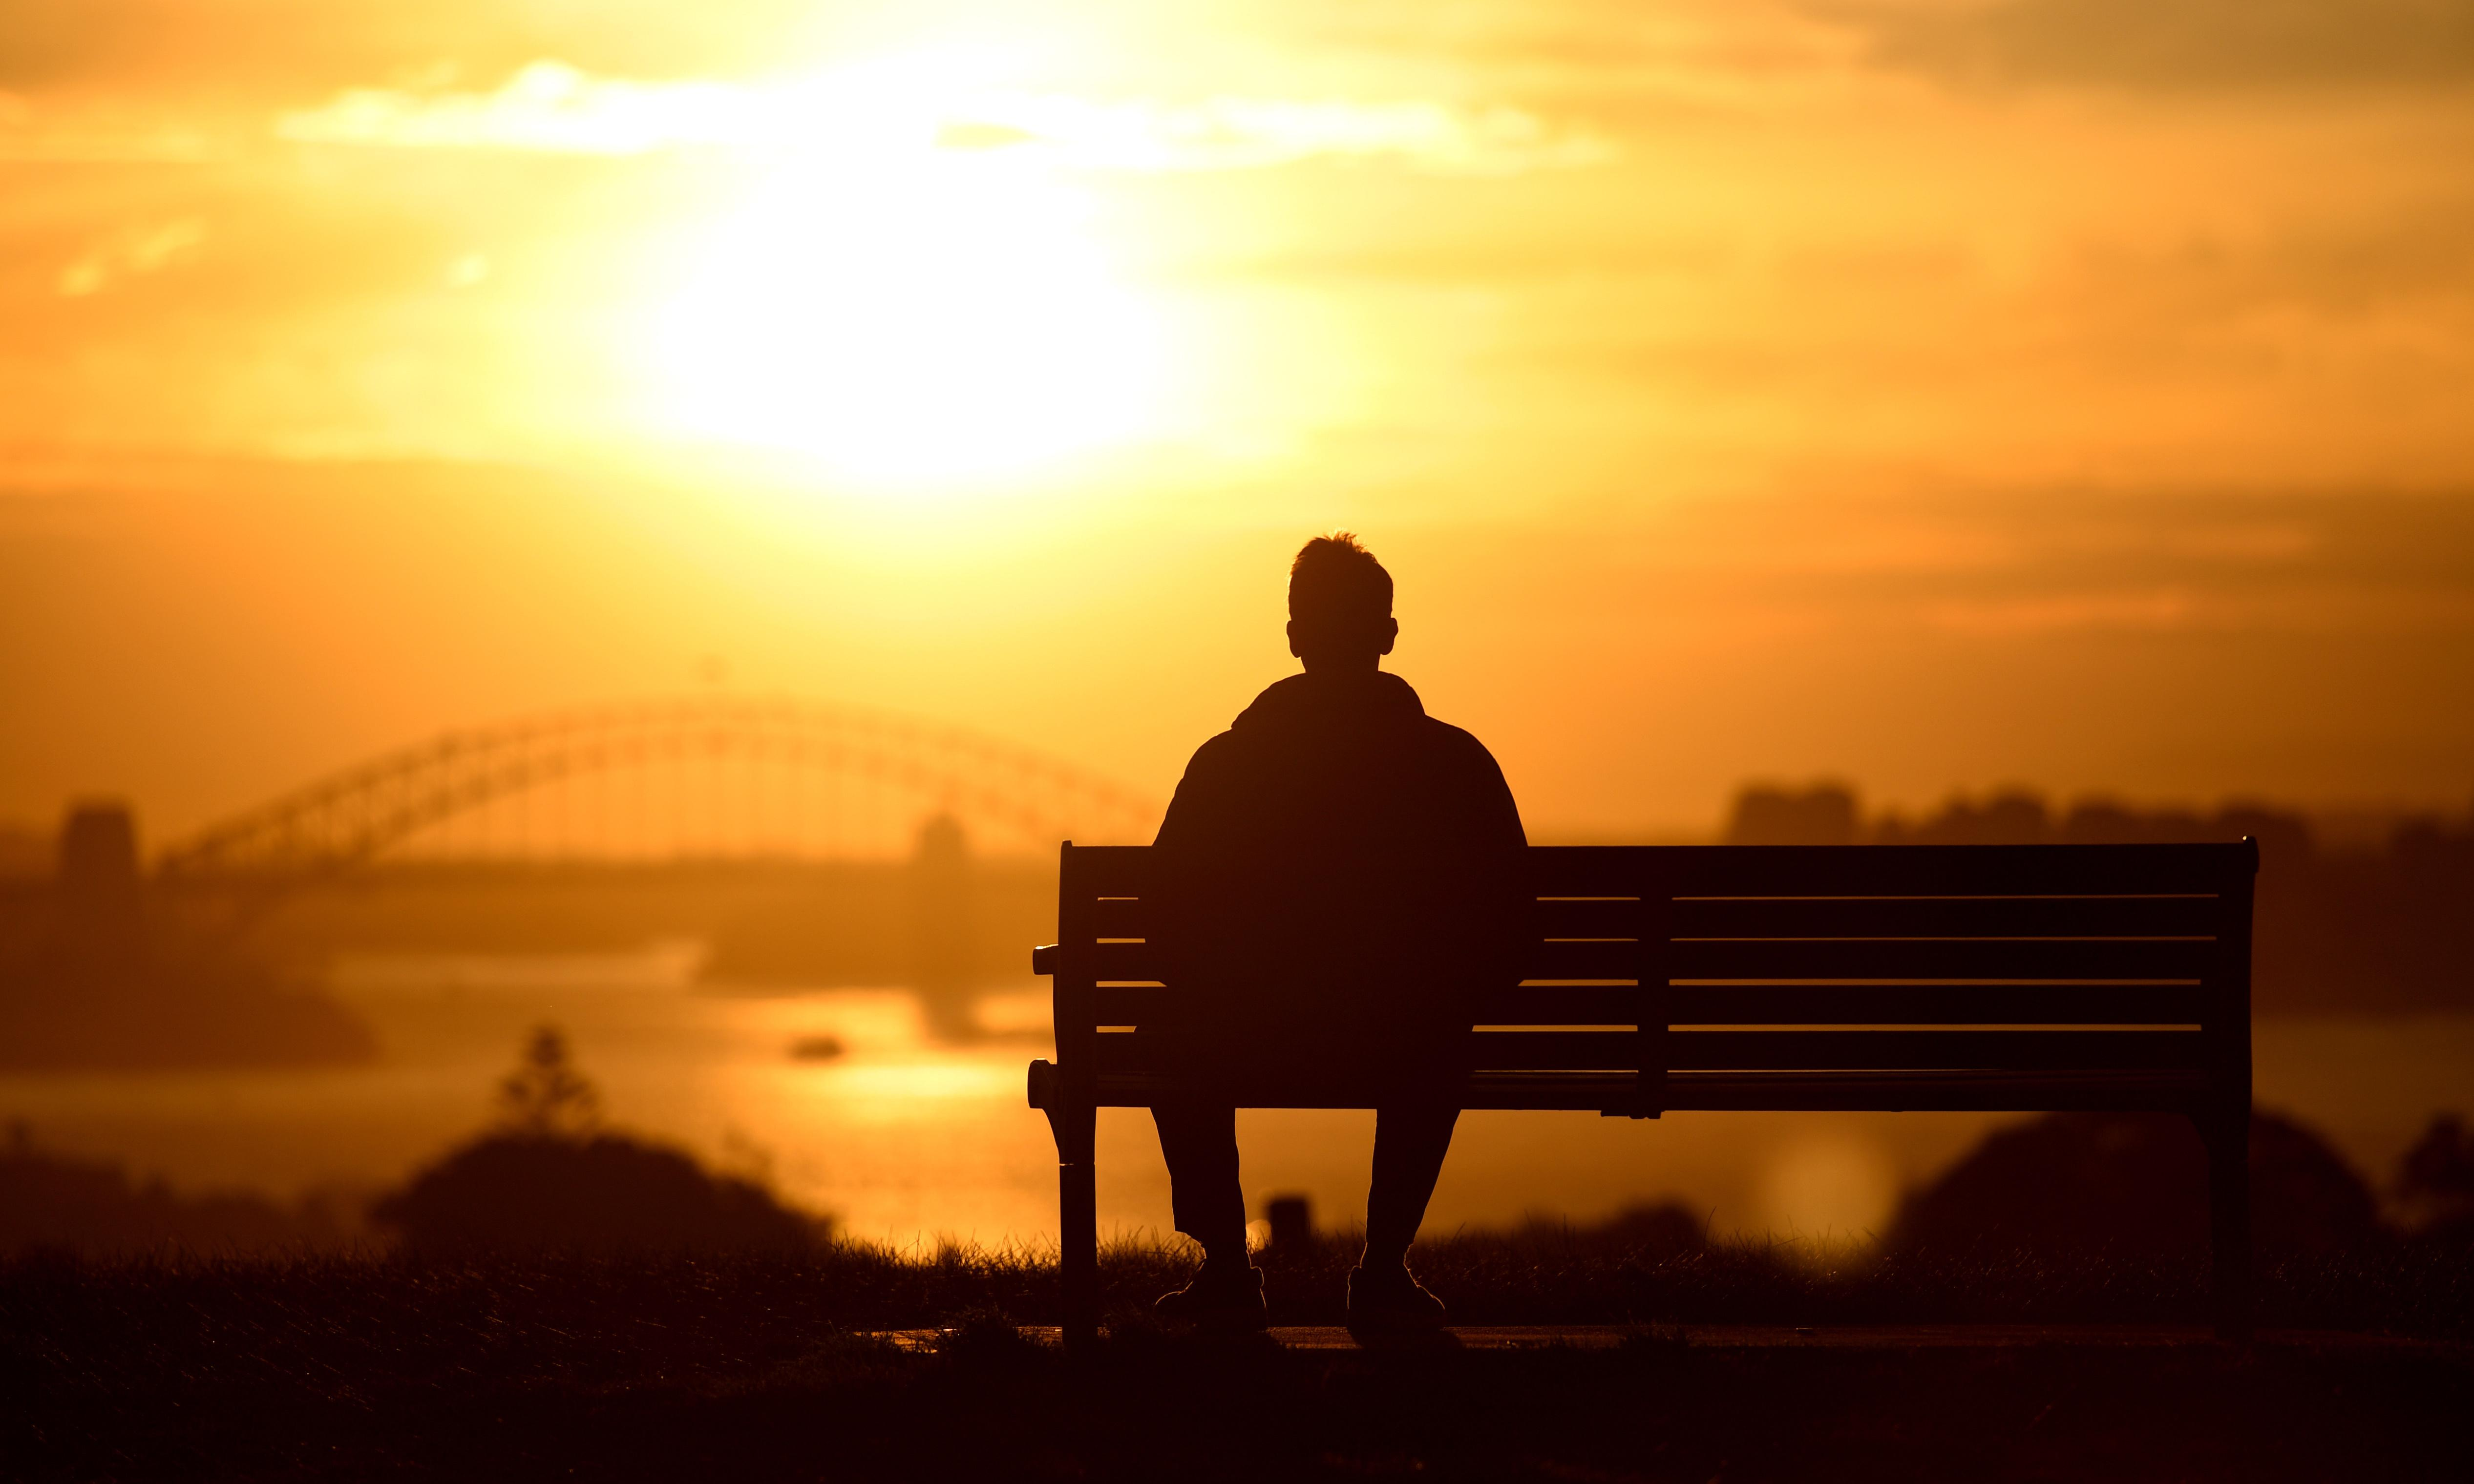 Sydney faces 27C weather with winter just days away